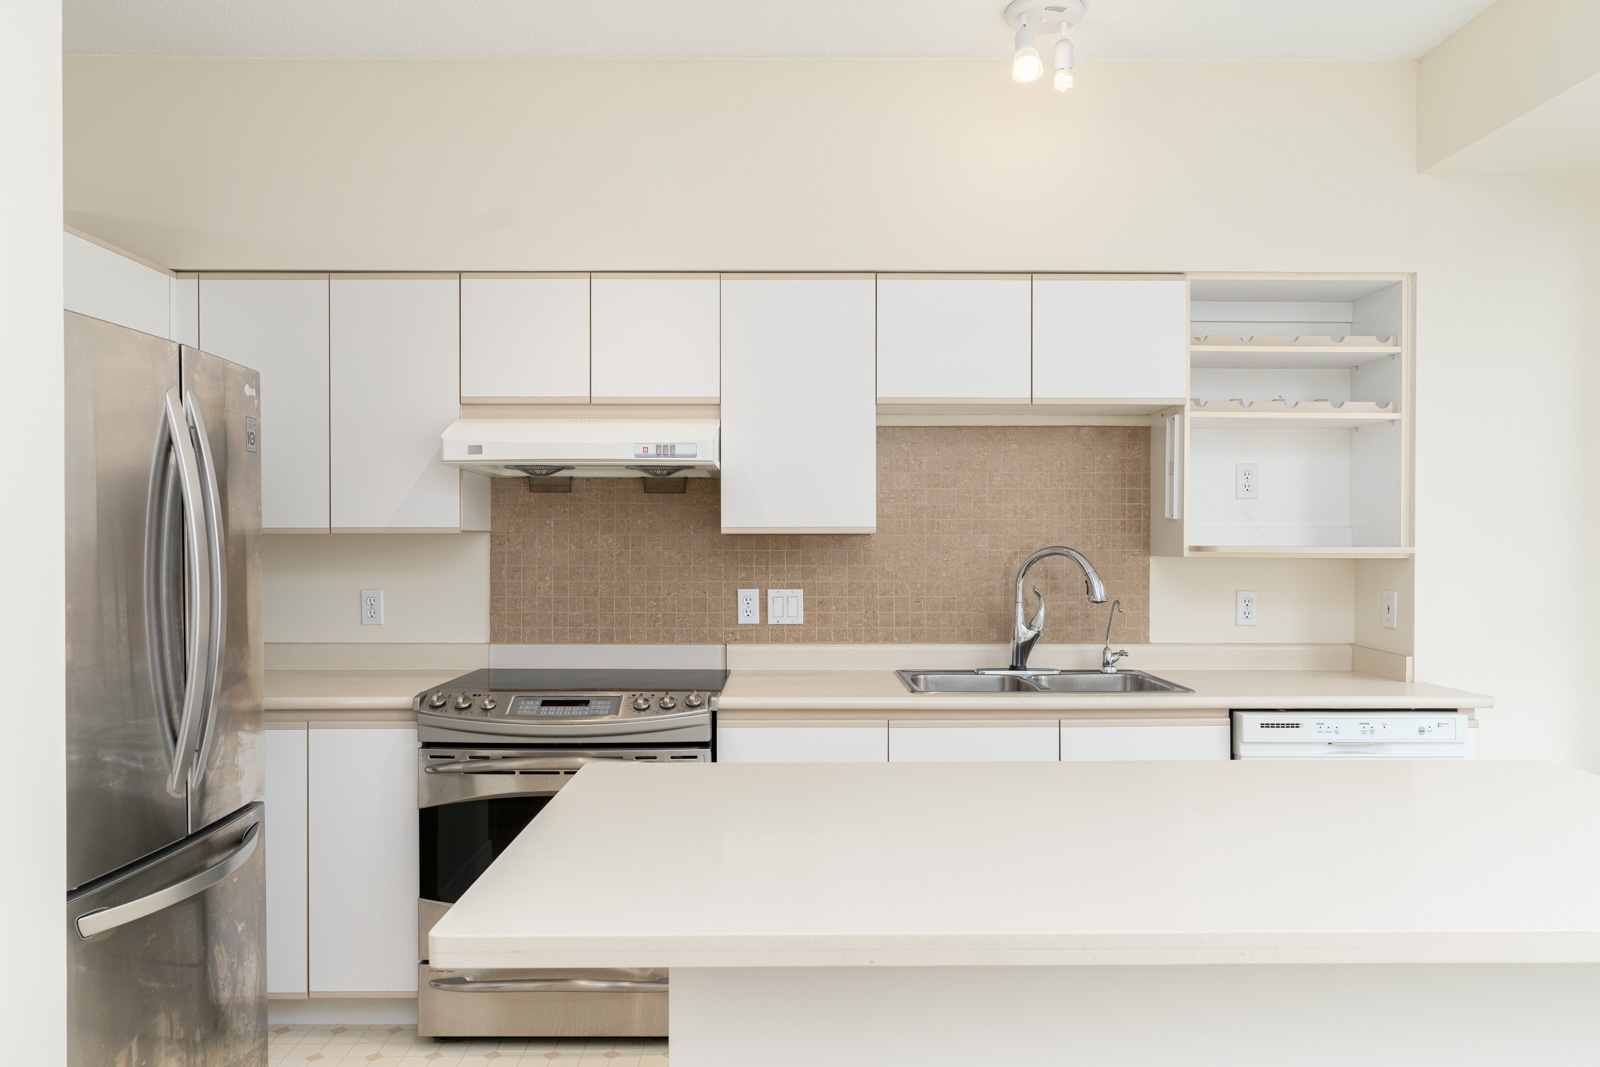 kitchen in rental house in the East Cambie neighbourhood of Richmond